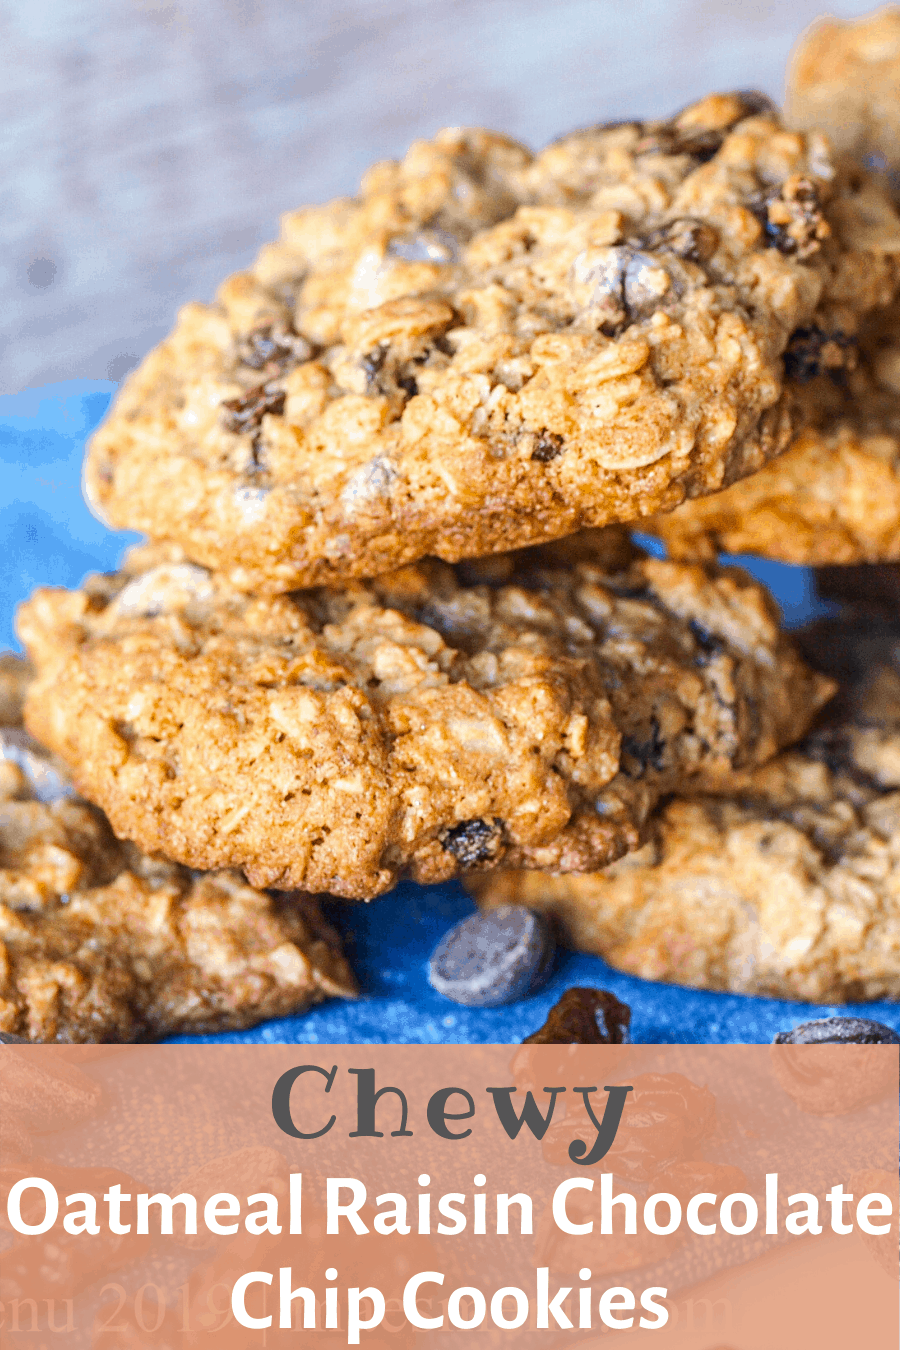 Pinterest pin for oatmeal raisin chocolate chip cookies